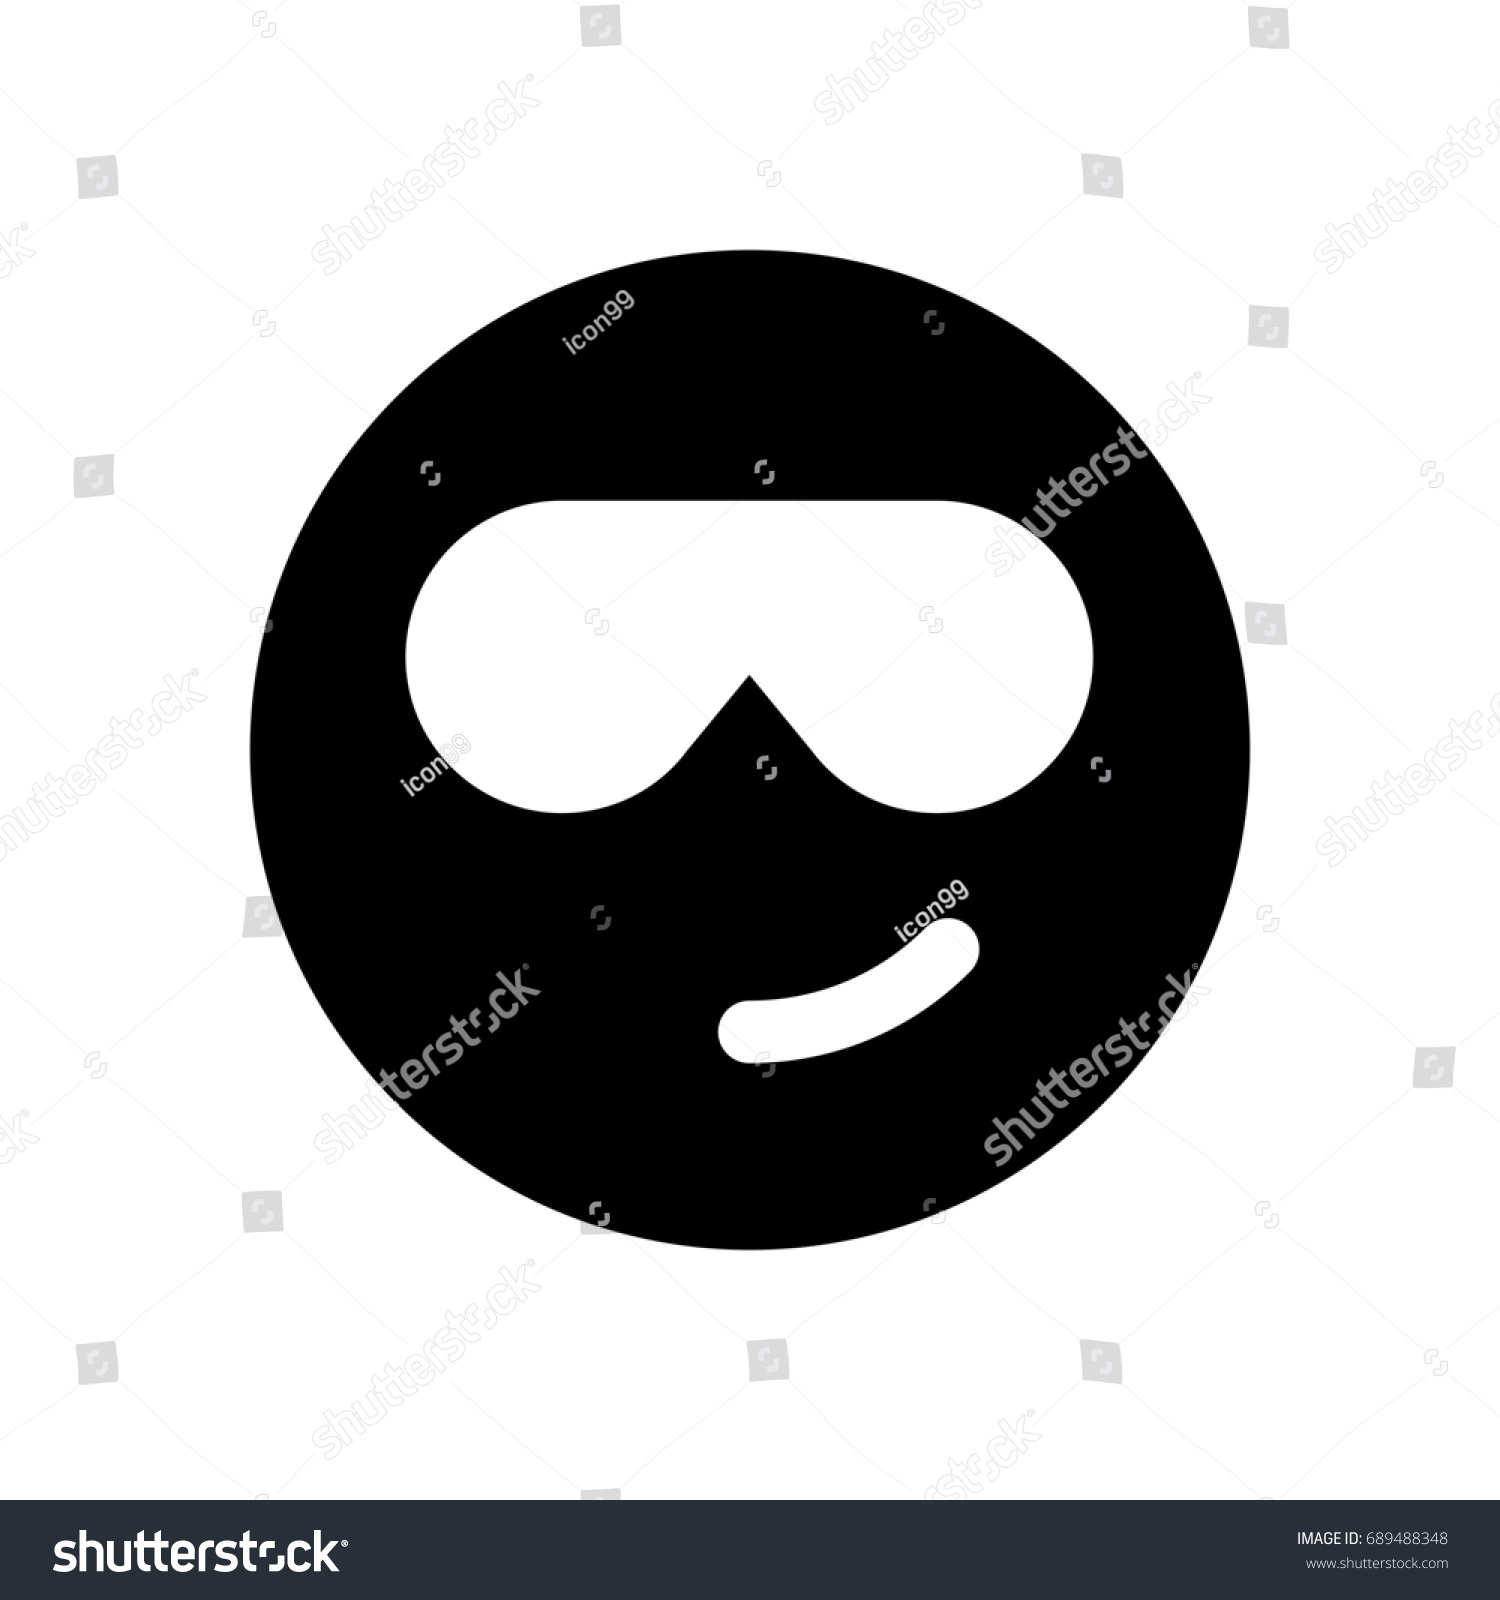 Cool emoji sunglasses stock vector 689488348 shutterstock cool emoji with sunglasses biocorpaavc Images